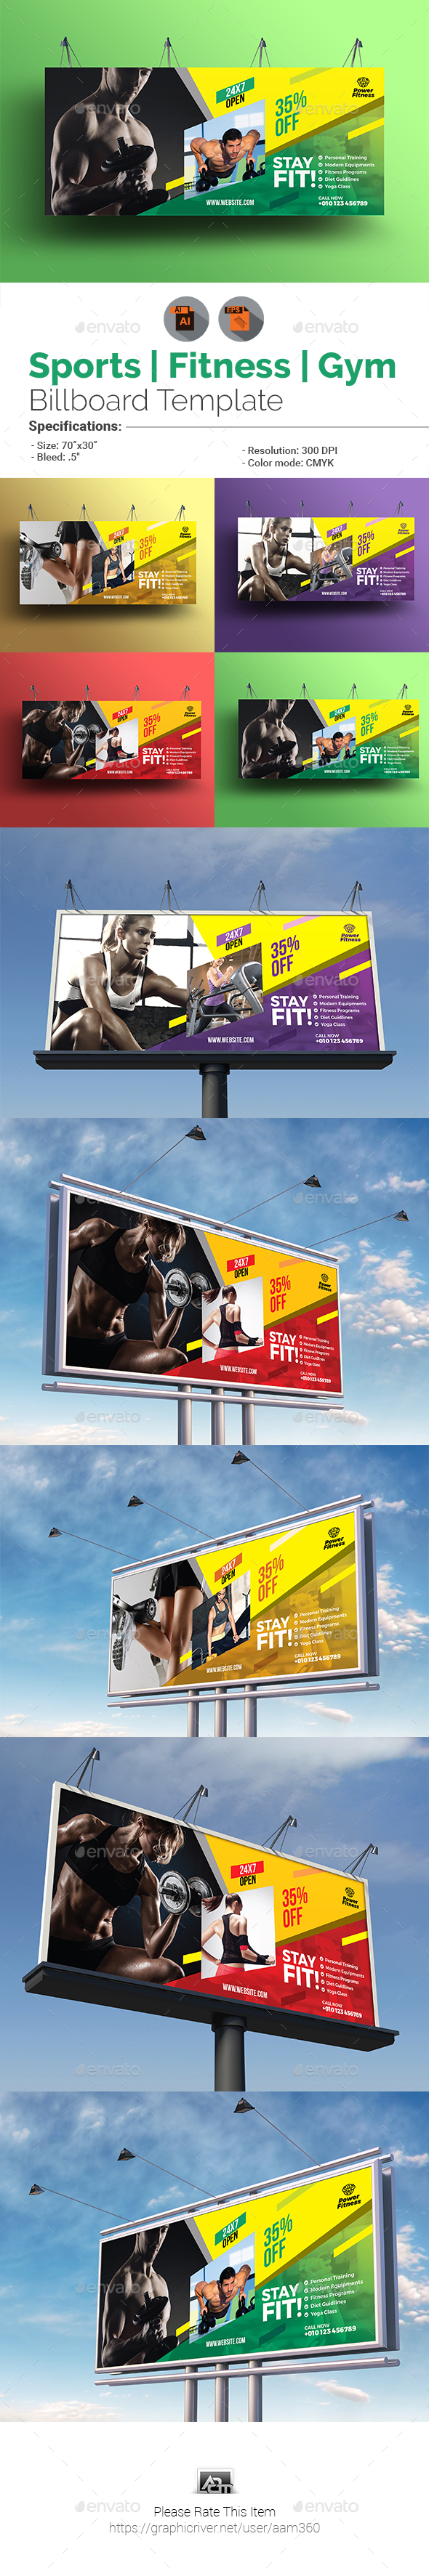 Sports | Fitness | Gym Billboard Template - Signage Print Templates